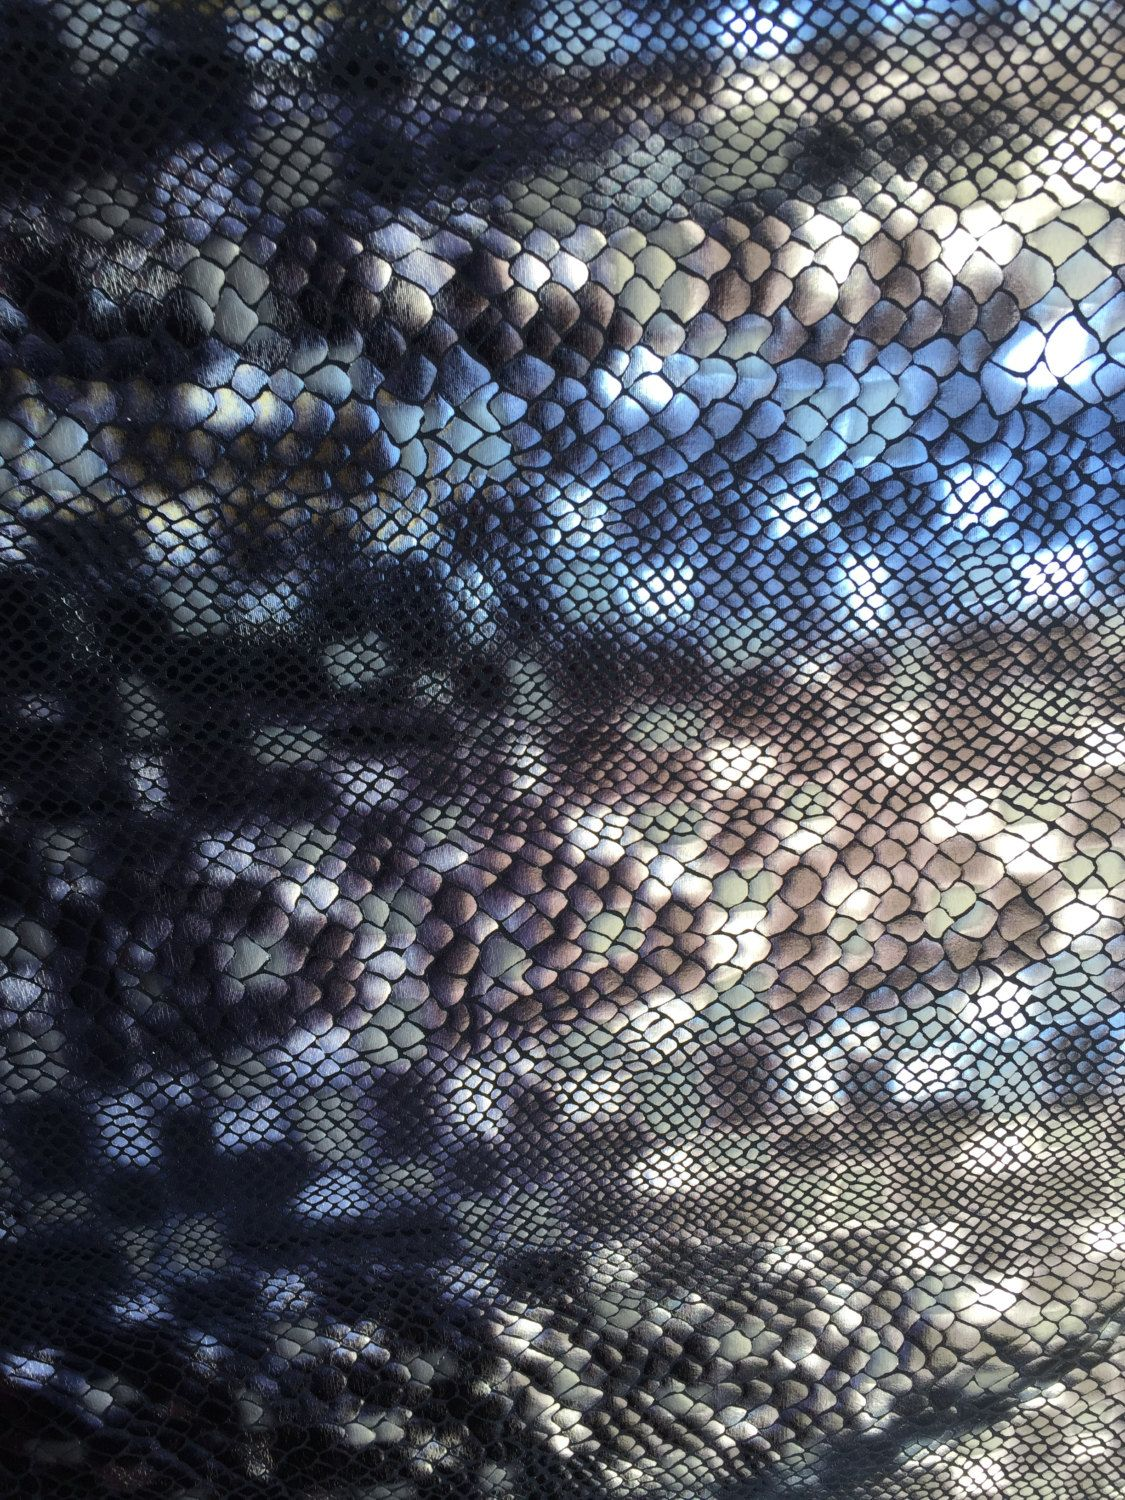 e101d52f4e1 Snake print brown grey black colors on poly spandex 4 way stretch fabric by  la20fabrics on Etsy